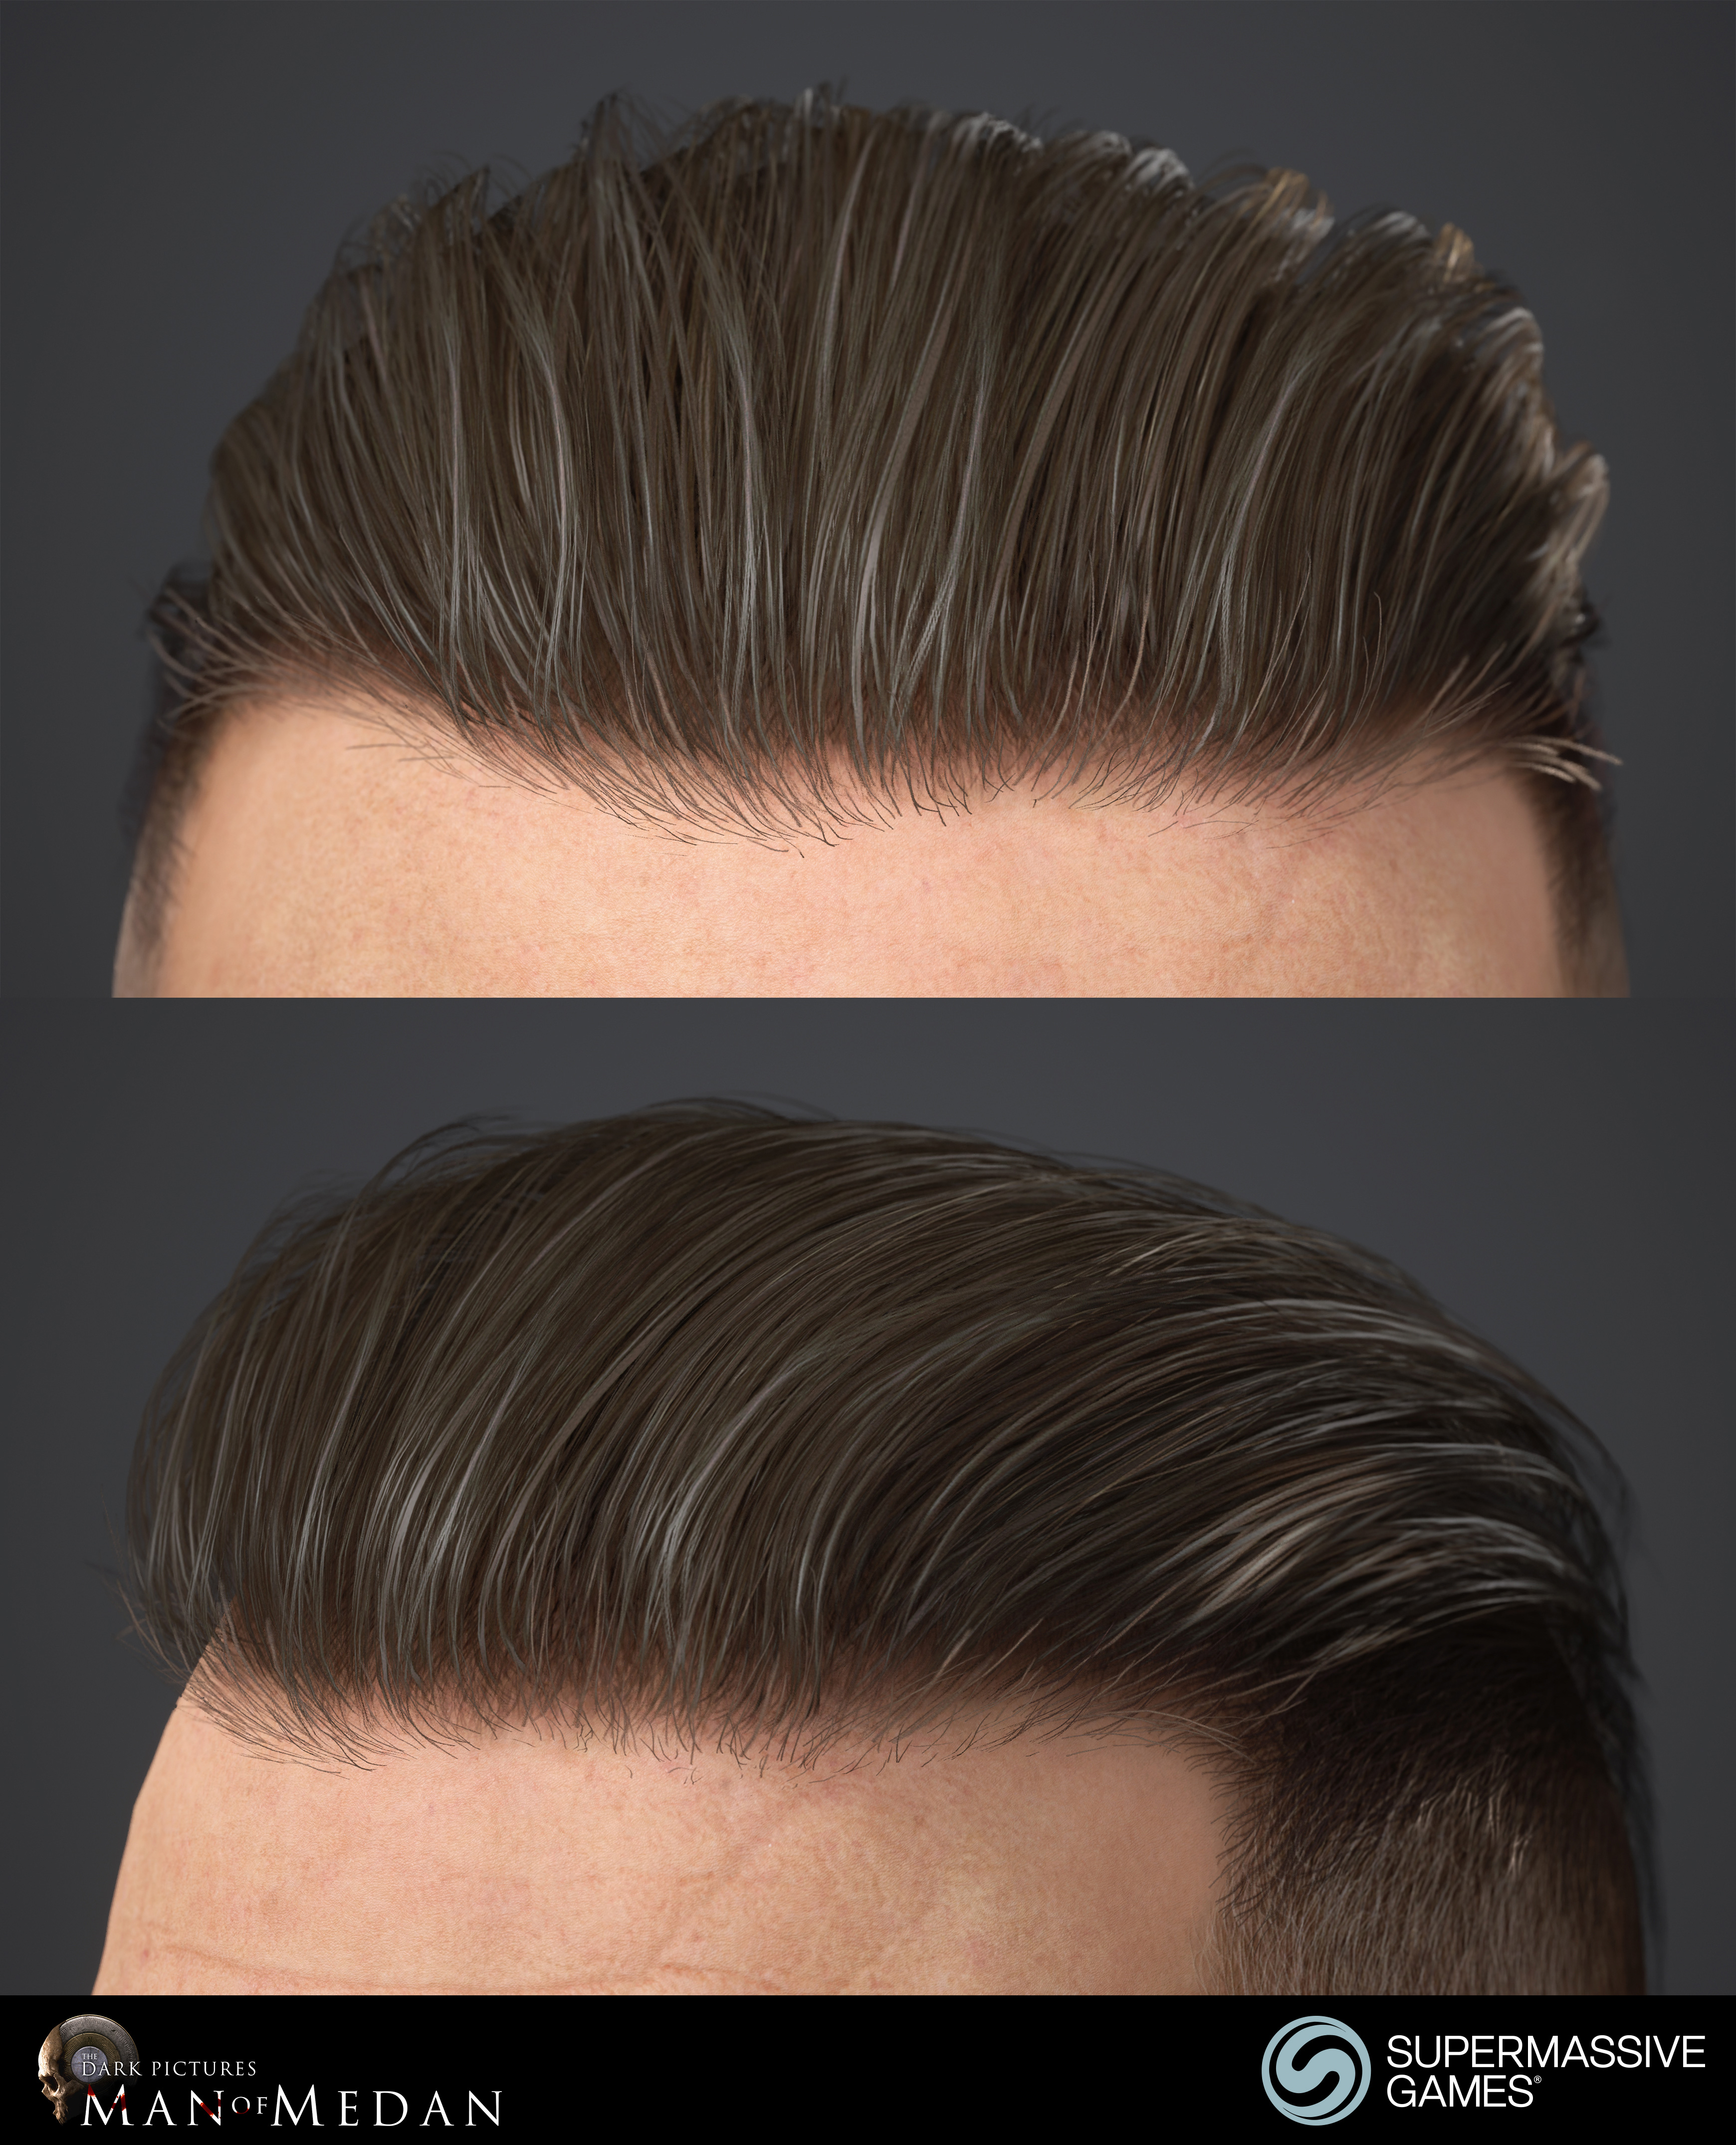 The Curator character from The Dark Pictures game in Unreal Engine. Strong hold hair wax, game hair. Andor Kollar